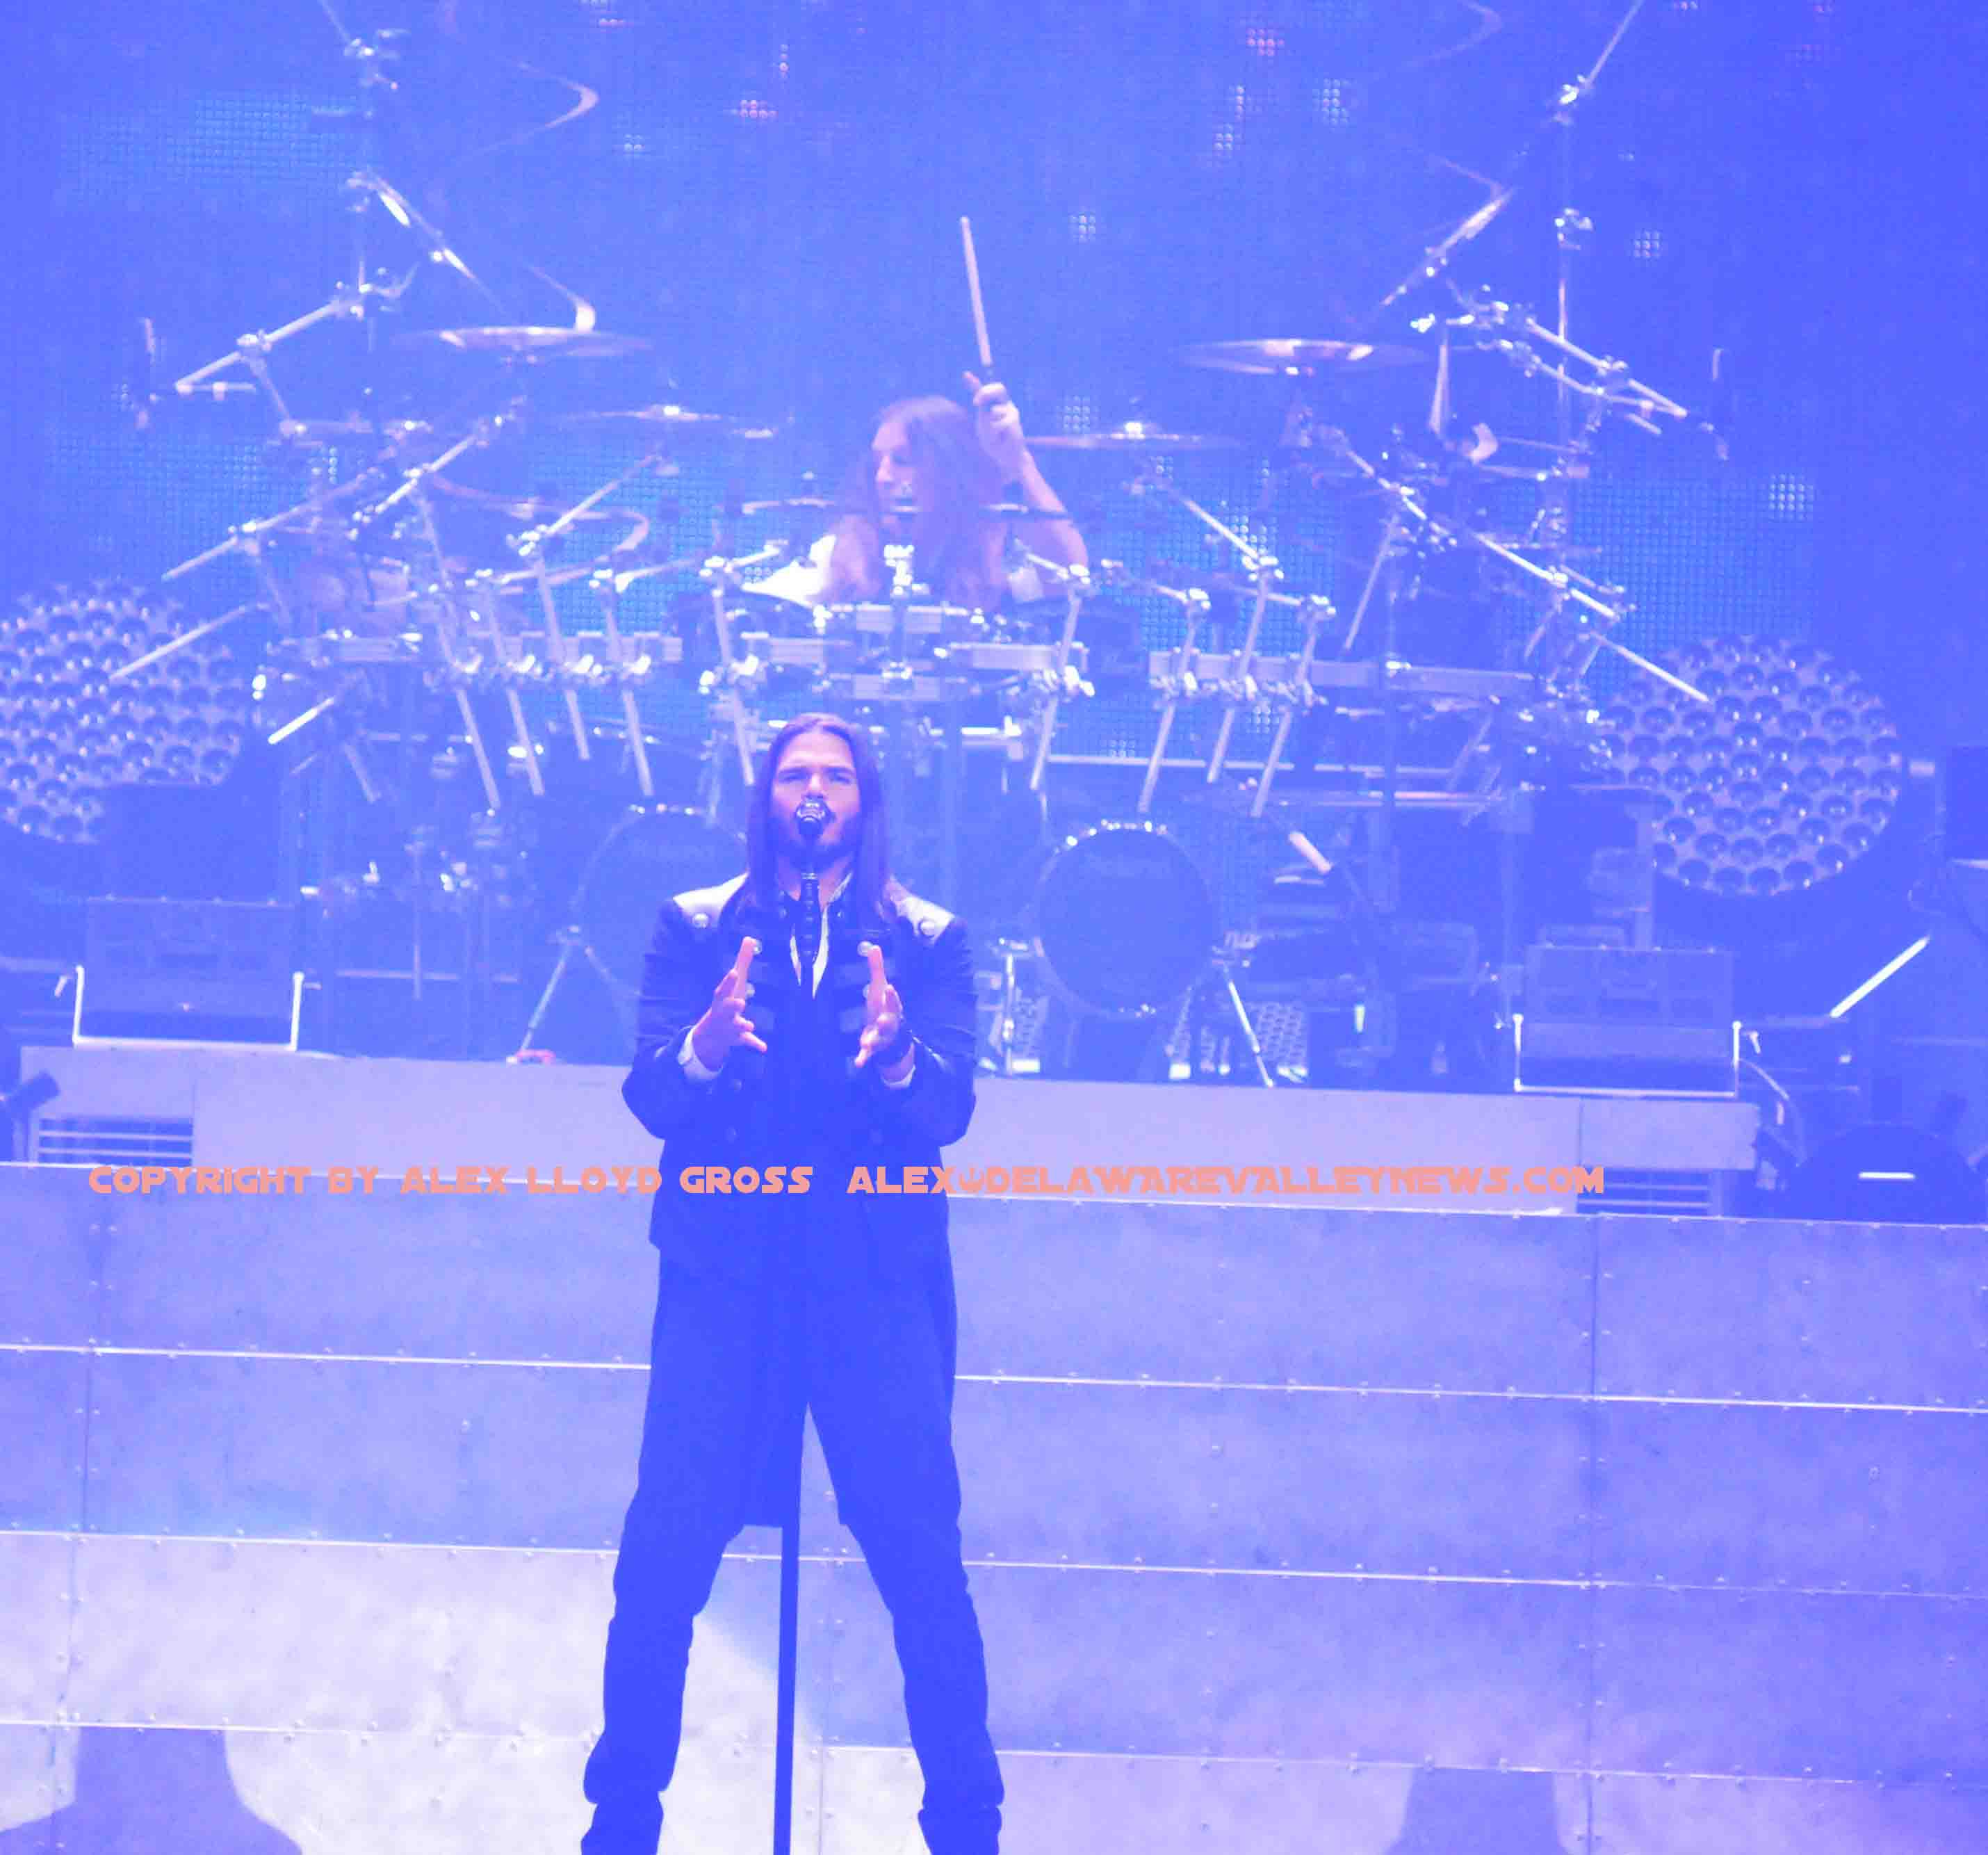 trans siberian orchestra is ready for local arena shows delaware valley news. Black Bedroom Furniture Sets. Home Design Ideas